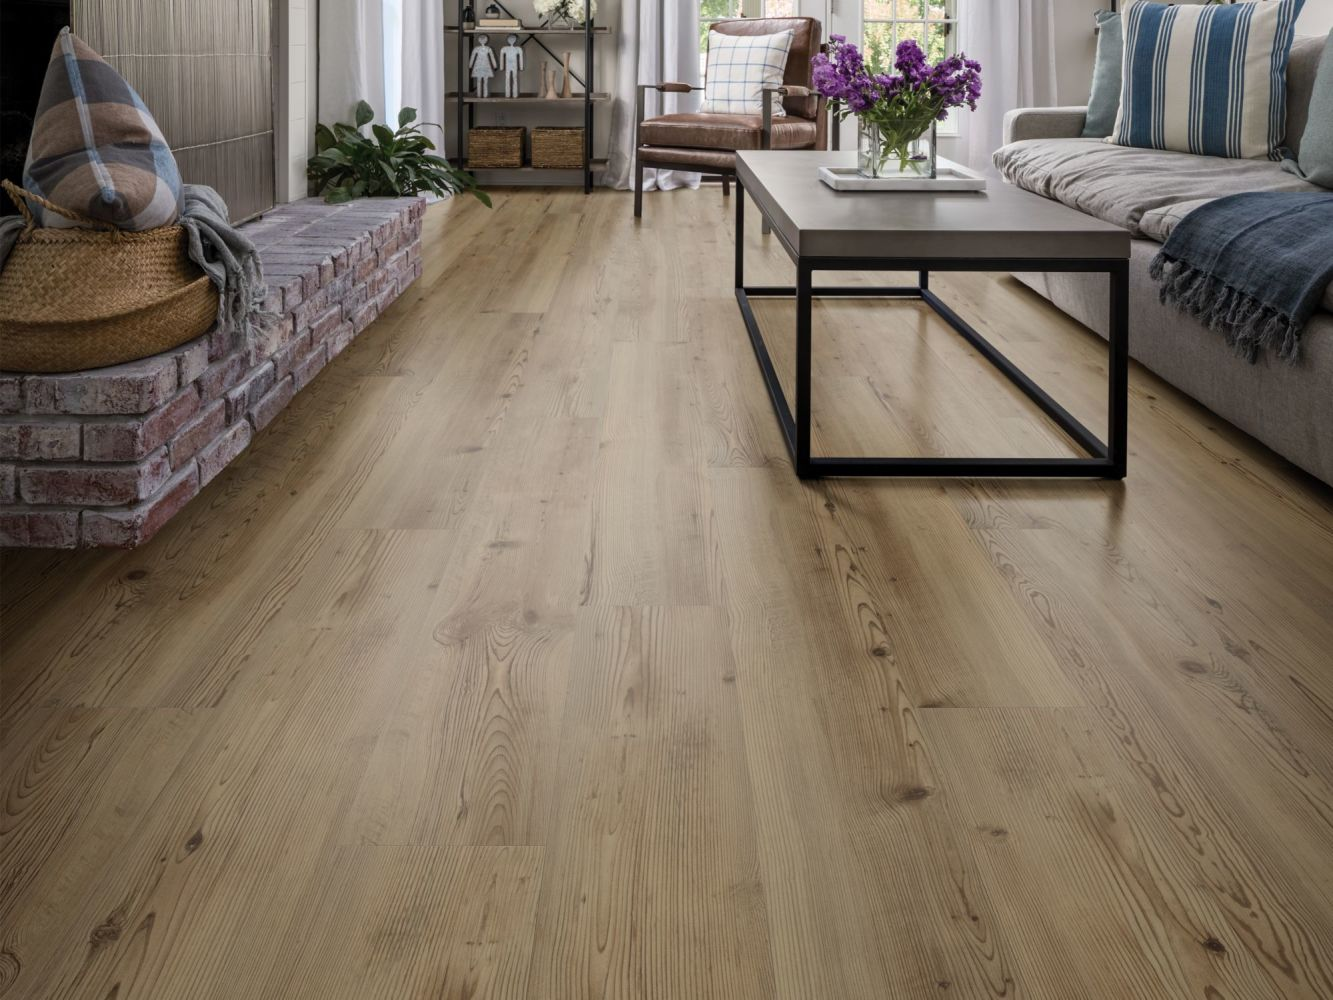 Shaw Floors Resilient Property Solutions Patriot+ Milled Sierra Pine 06002_VE308